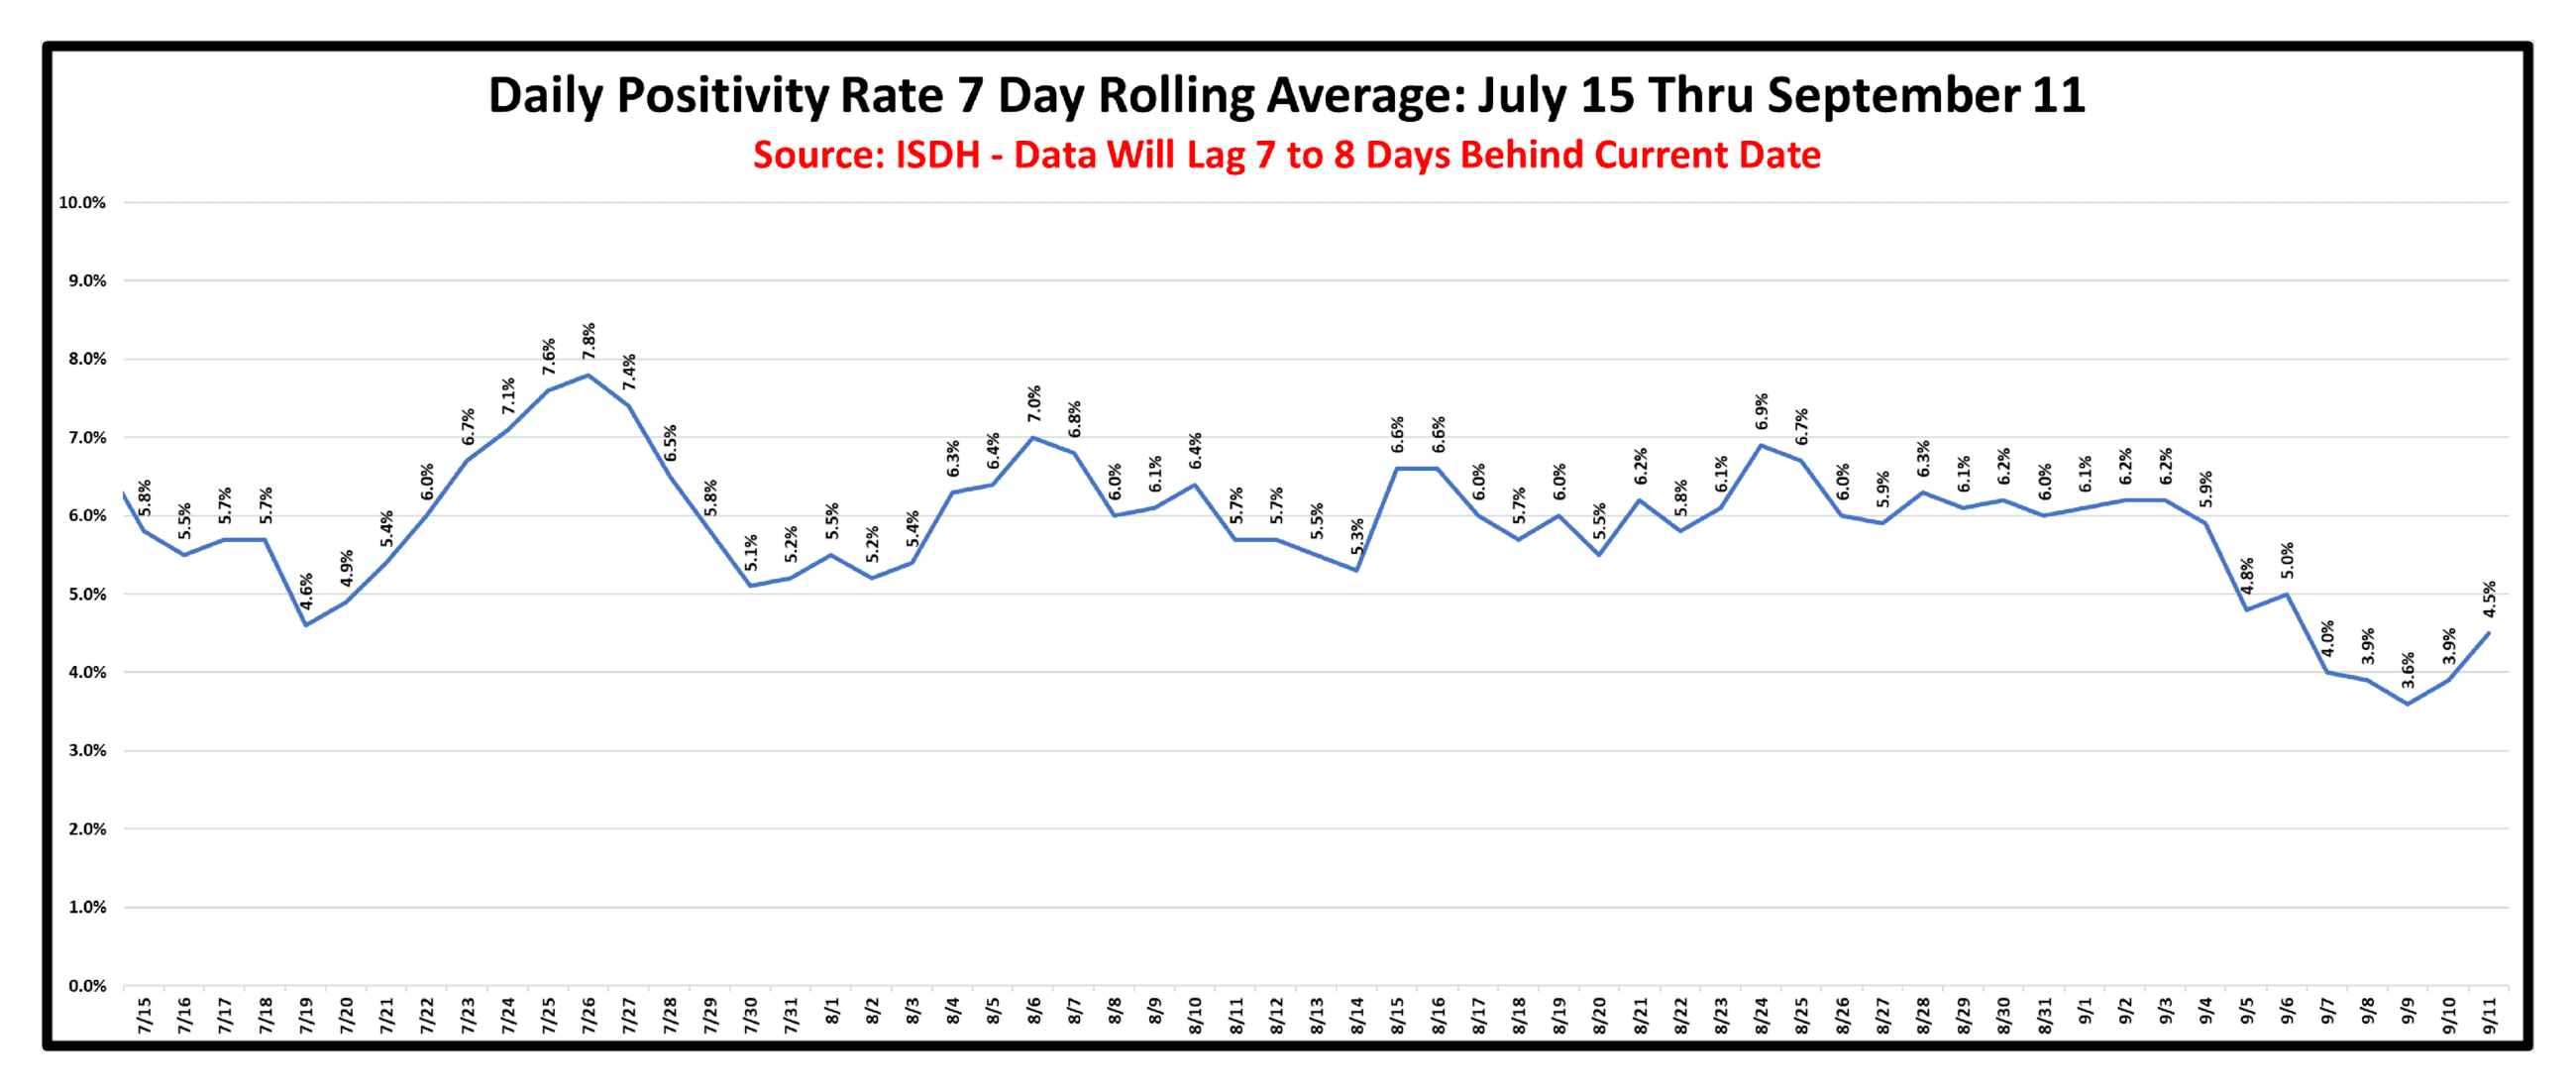 Daily Positivity Rate 7 Day Rolling Average Through September 11 - Last Updated September 19